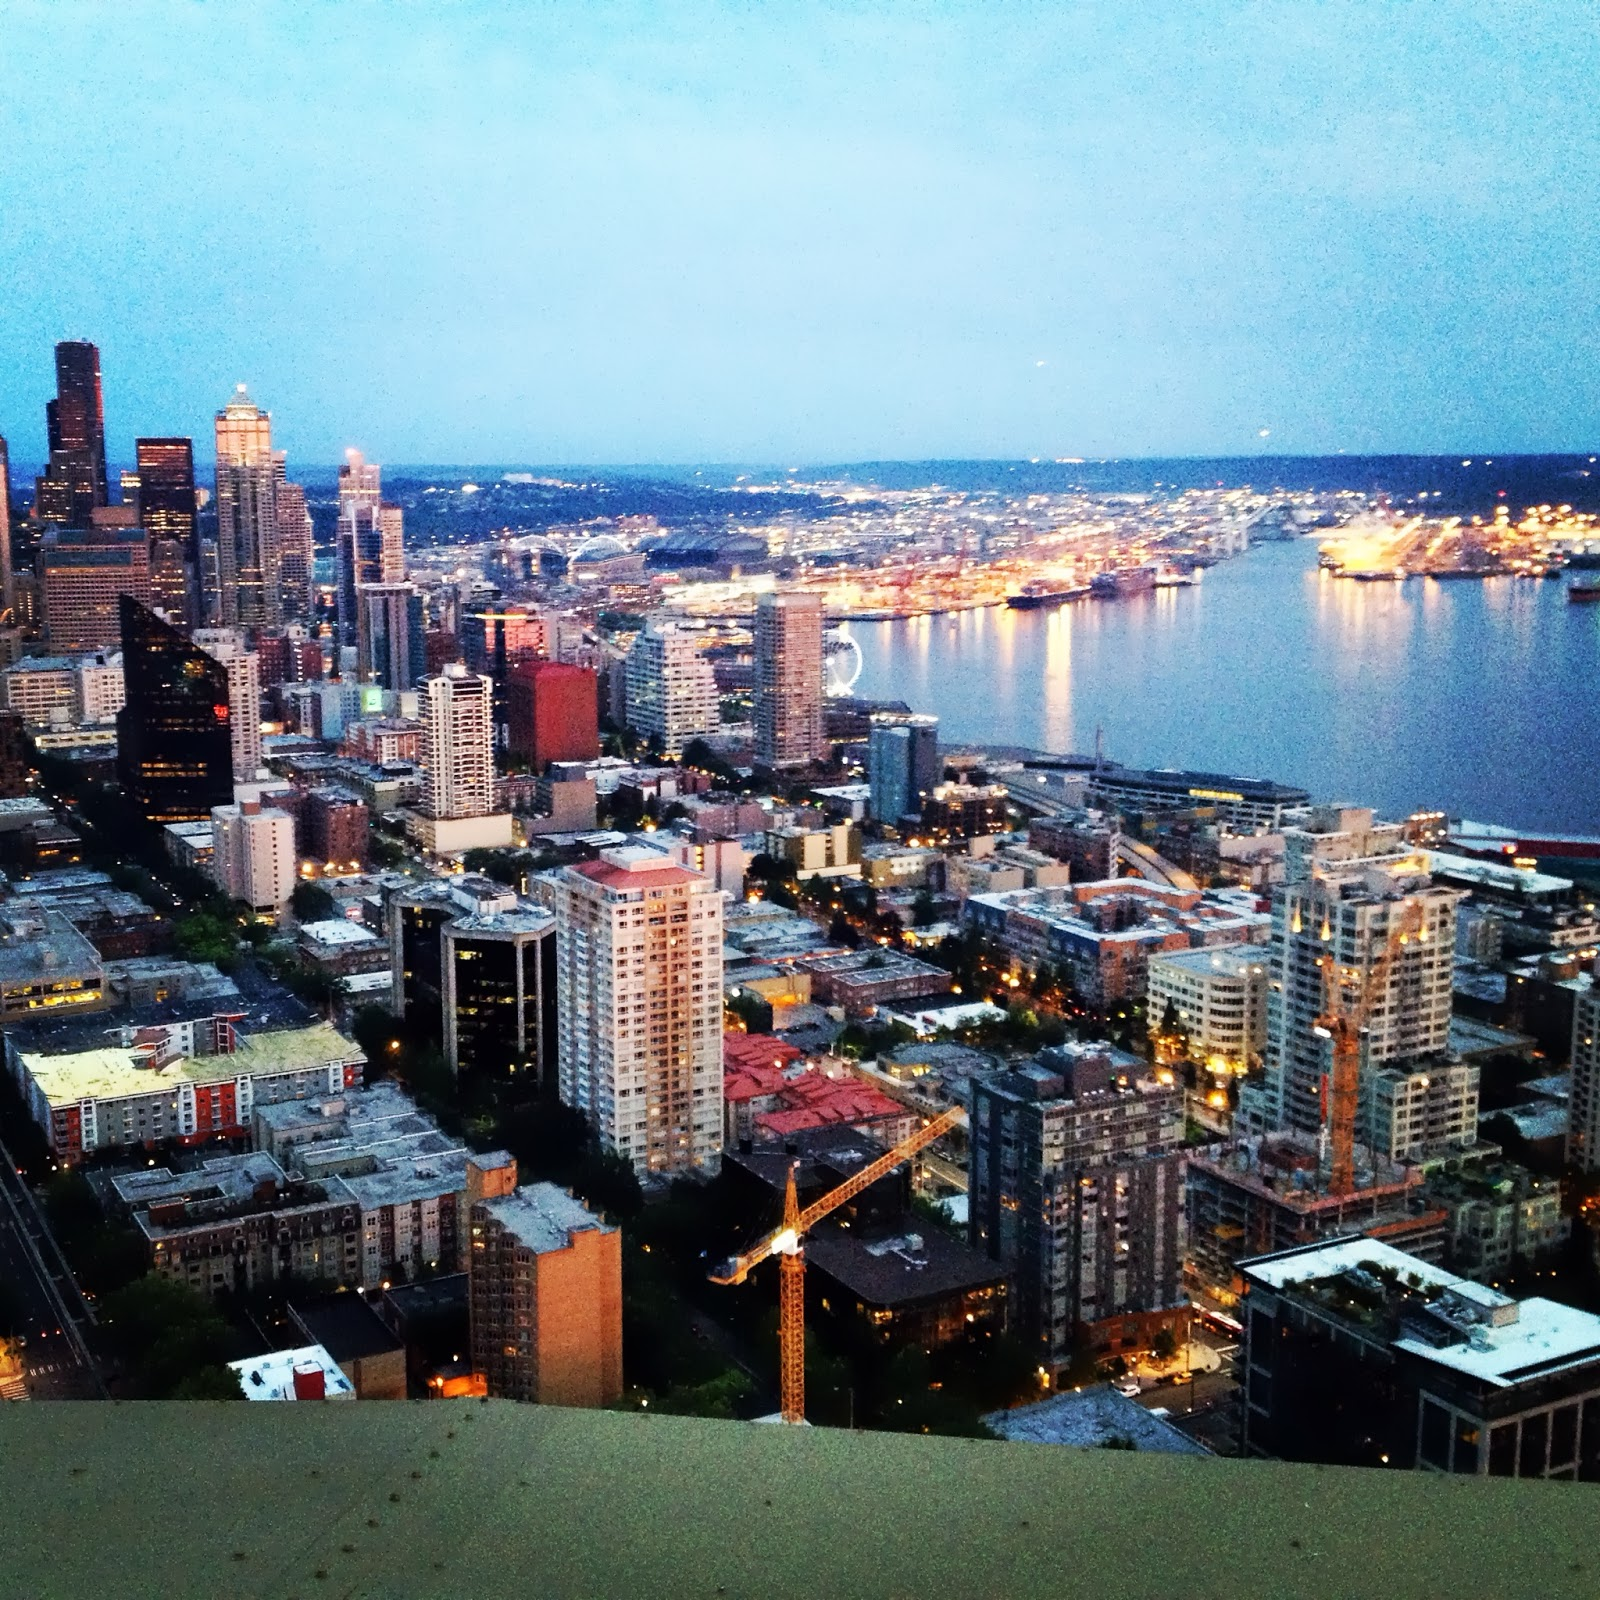 The nighttime view of Seattle from the Space Needle